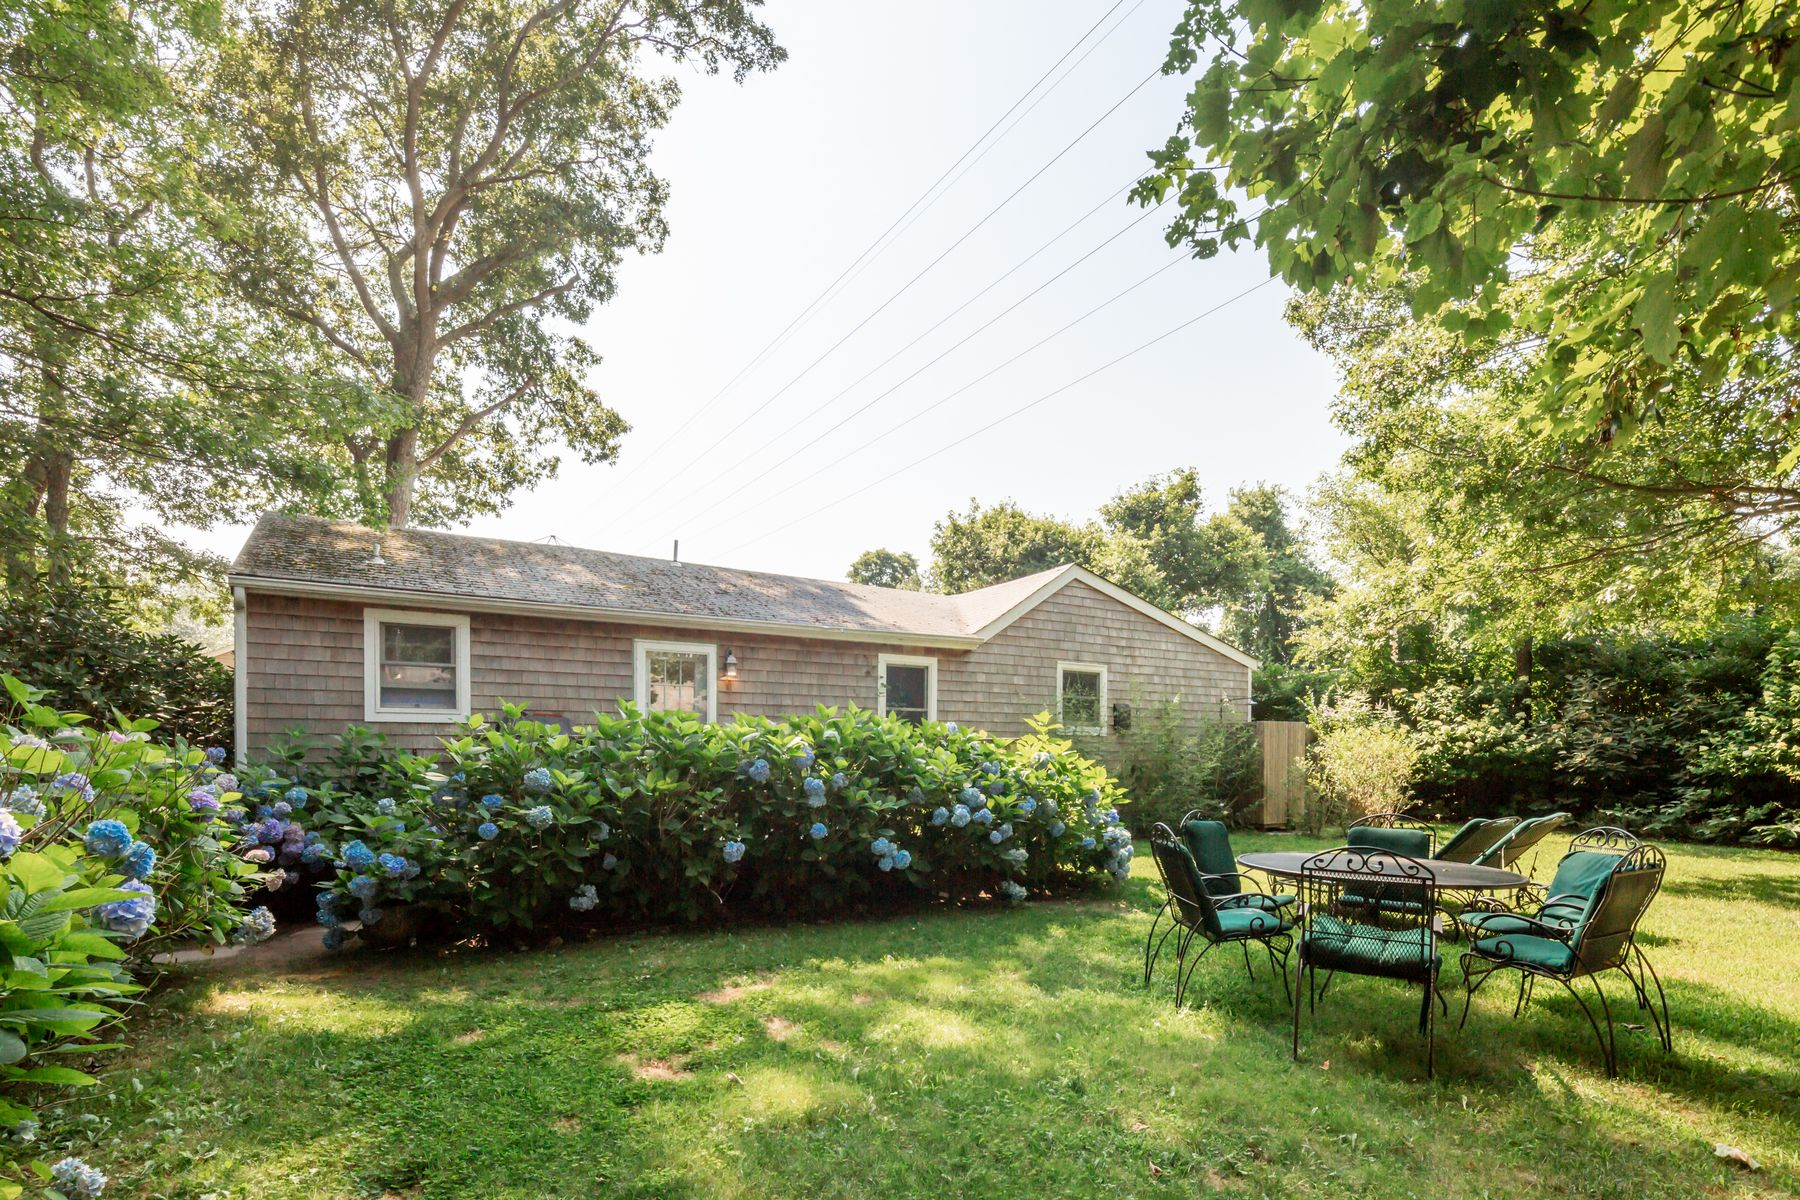 Single Family Homes for Sale at Charming Amagansett Pied-A-Terre 30 Grove Street Amagansett, New York 11930 United States